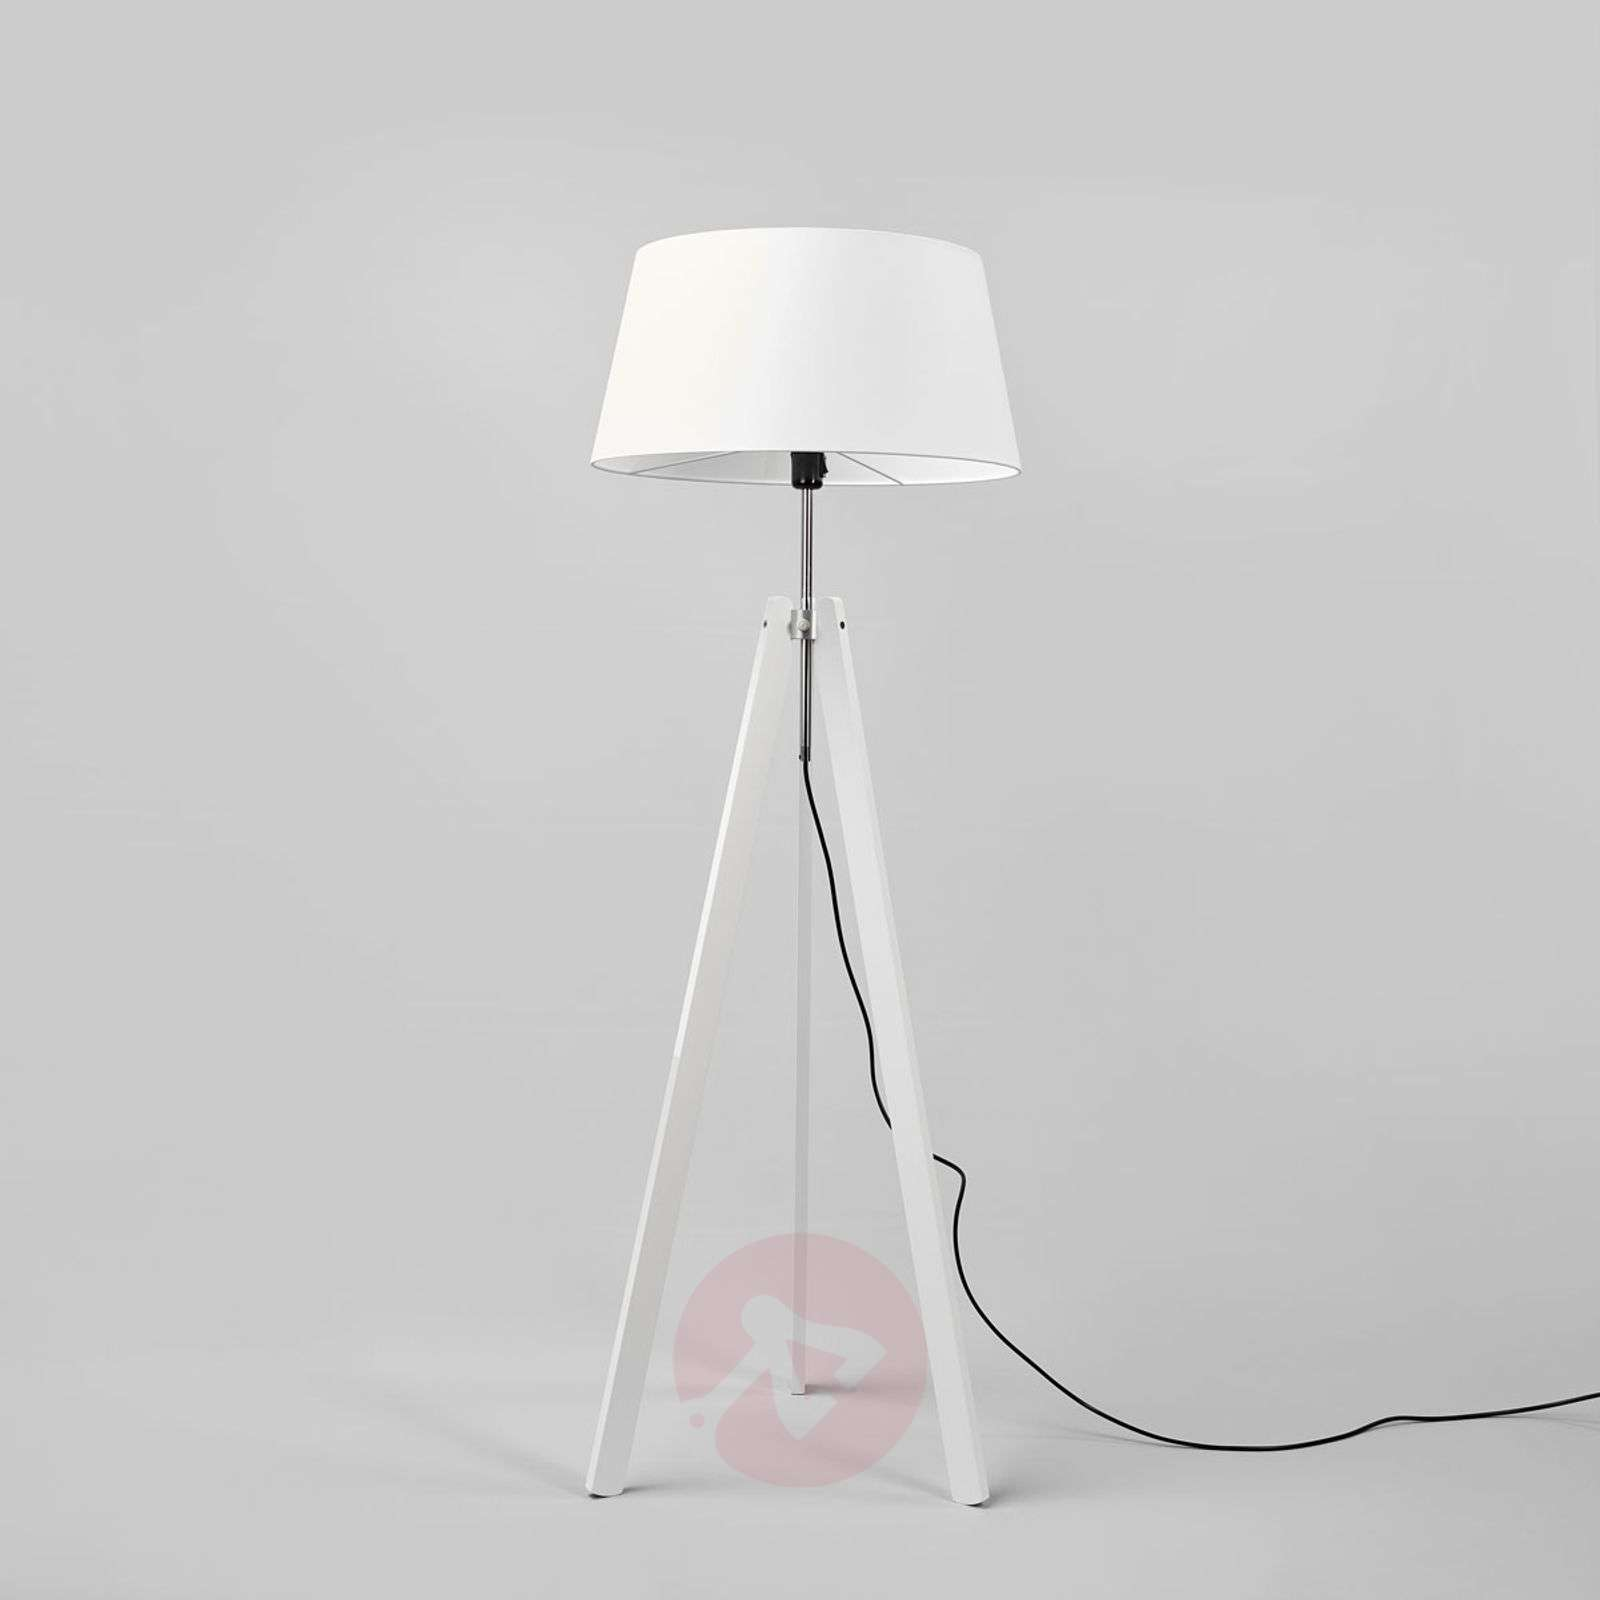 Thea tripod floor lamp with wooden legs-6722428-01